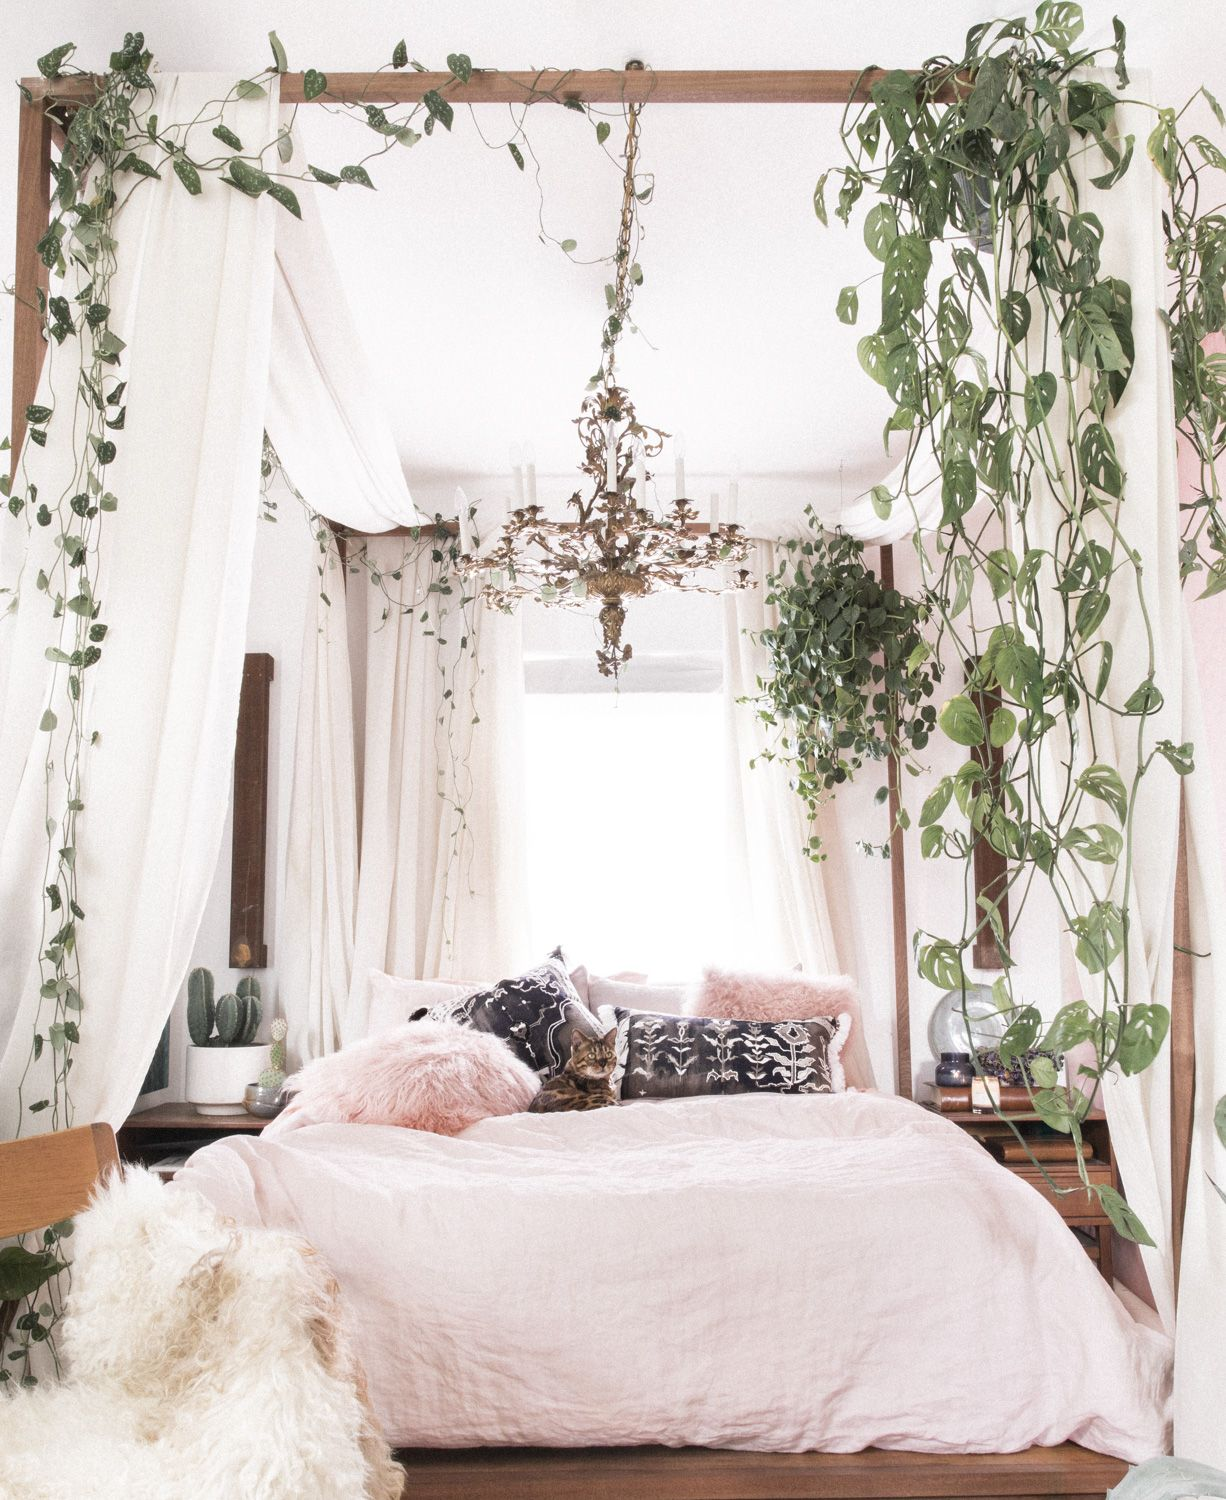 Small-Space Decor Tips From This Gorgeous Boho Apartment ...